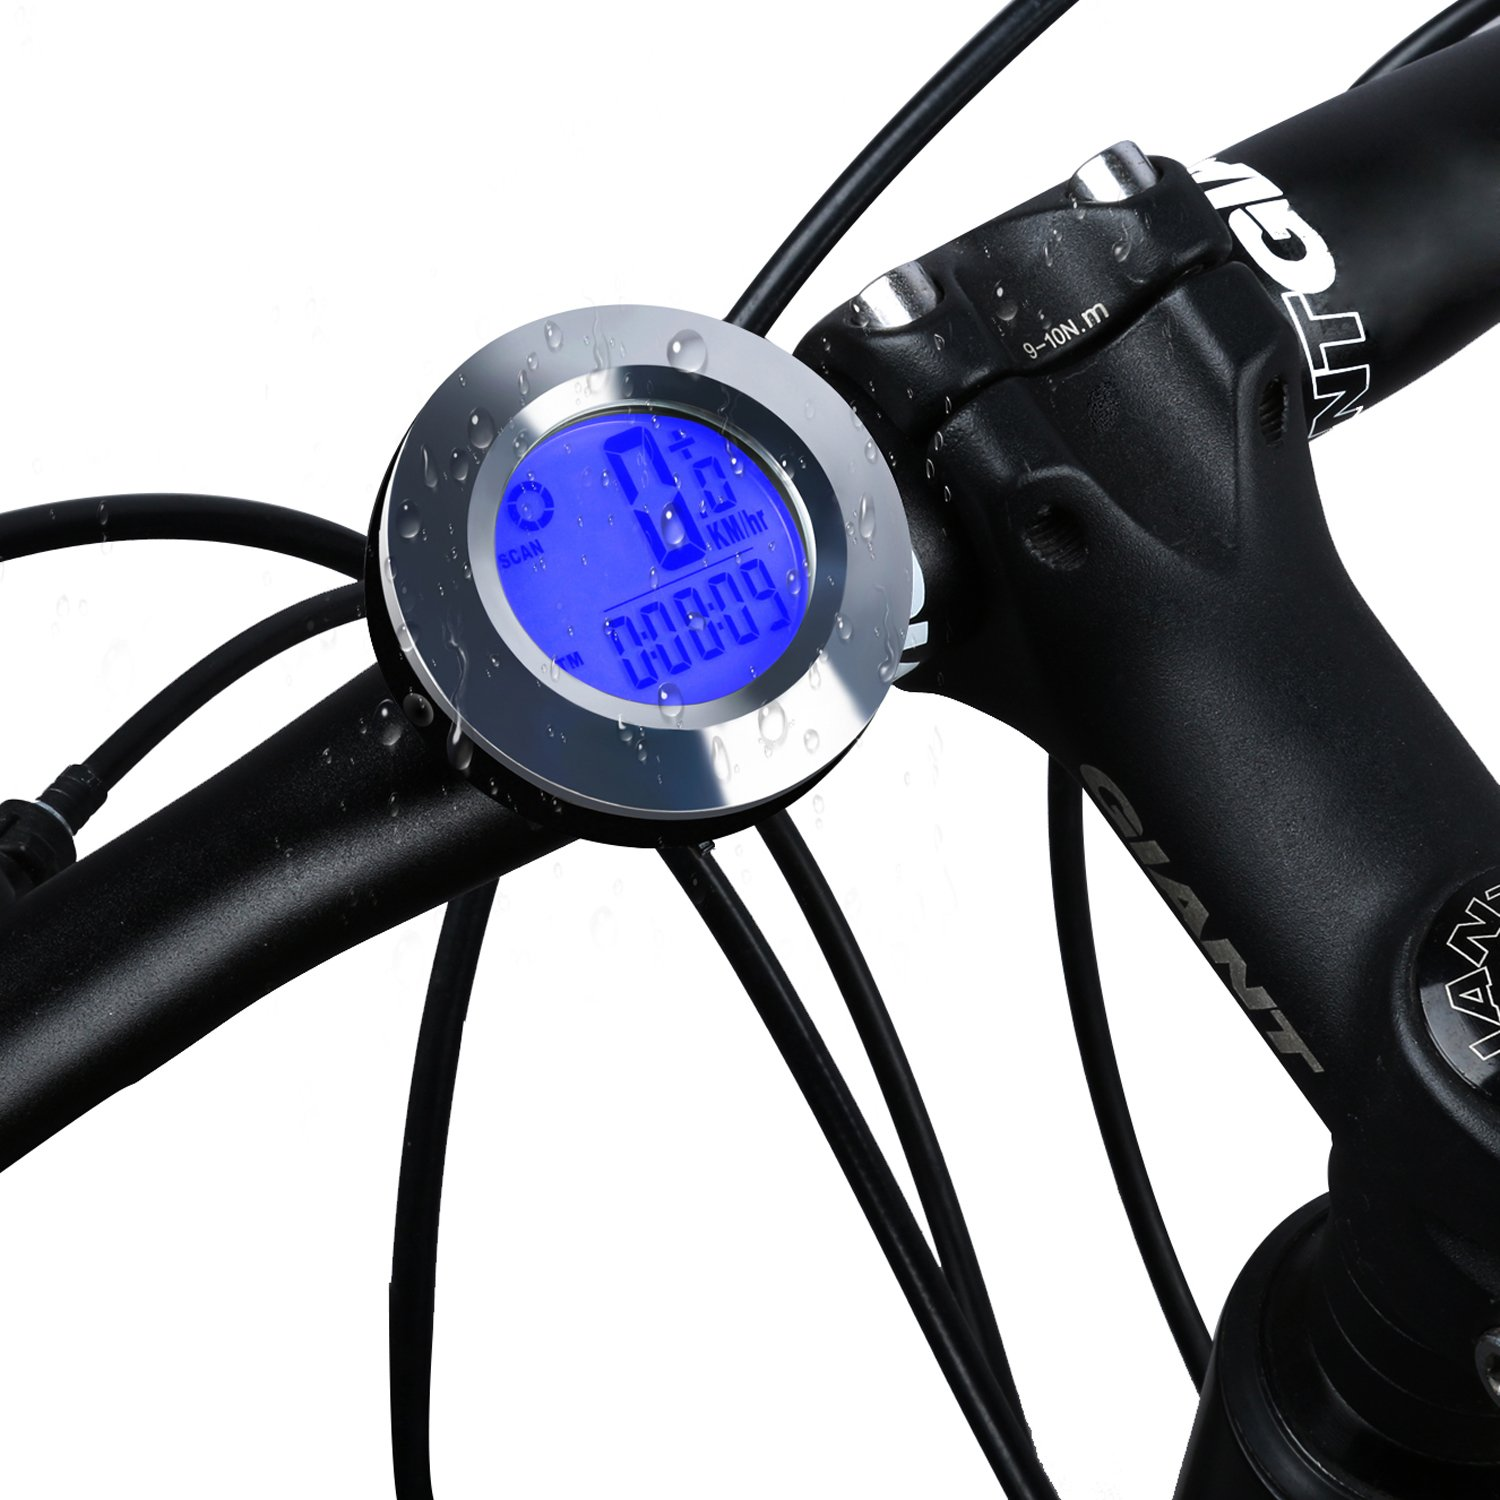 ICOCOPRO Bike Speedometer and Odometer Wireless - Flexible Round Shape,Waterproof Cycle Computer with LCD Backlight Display Multi-Function Bicycle Computer